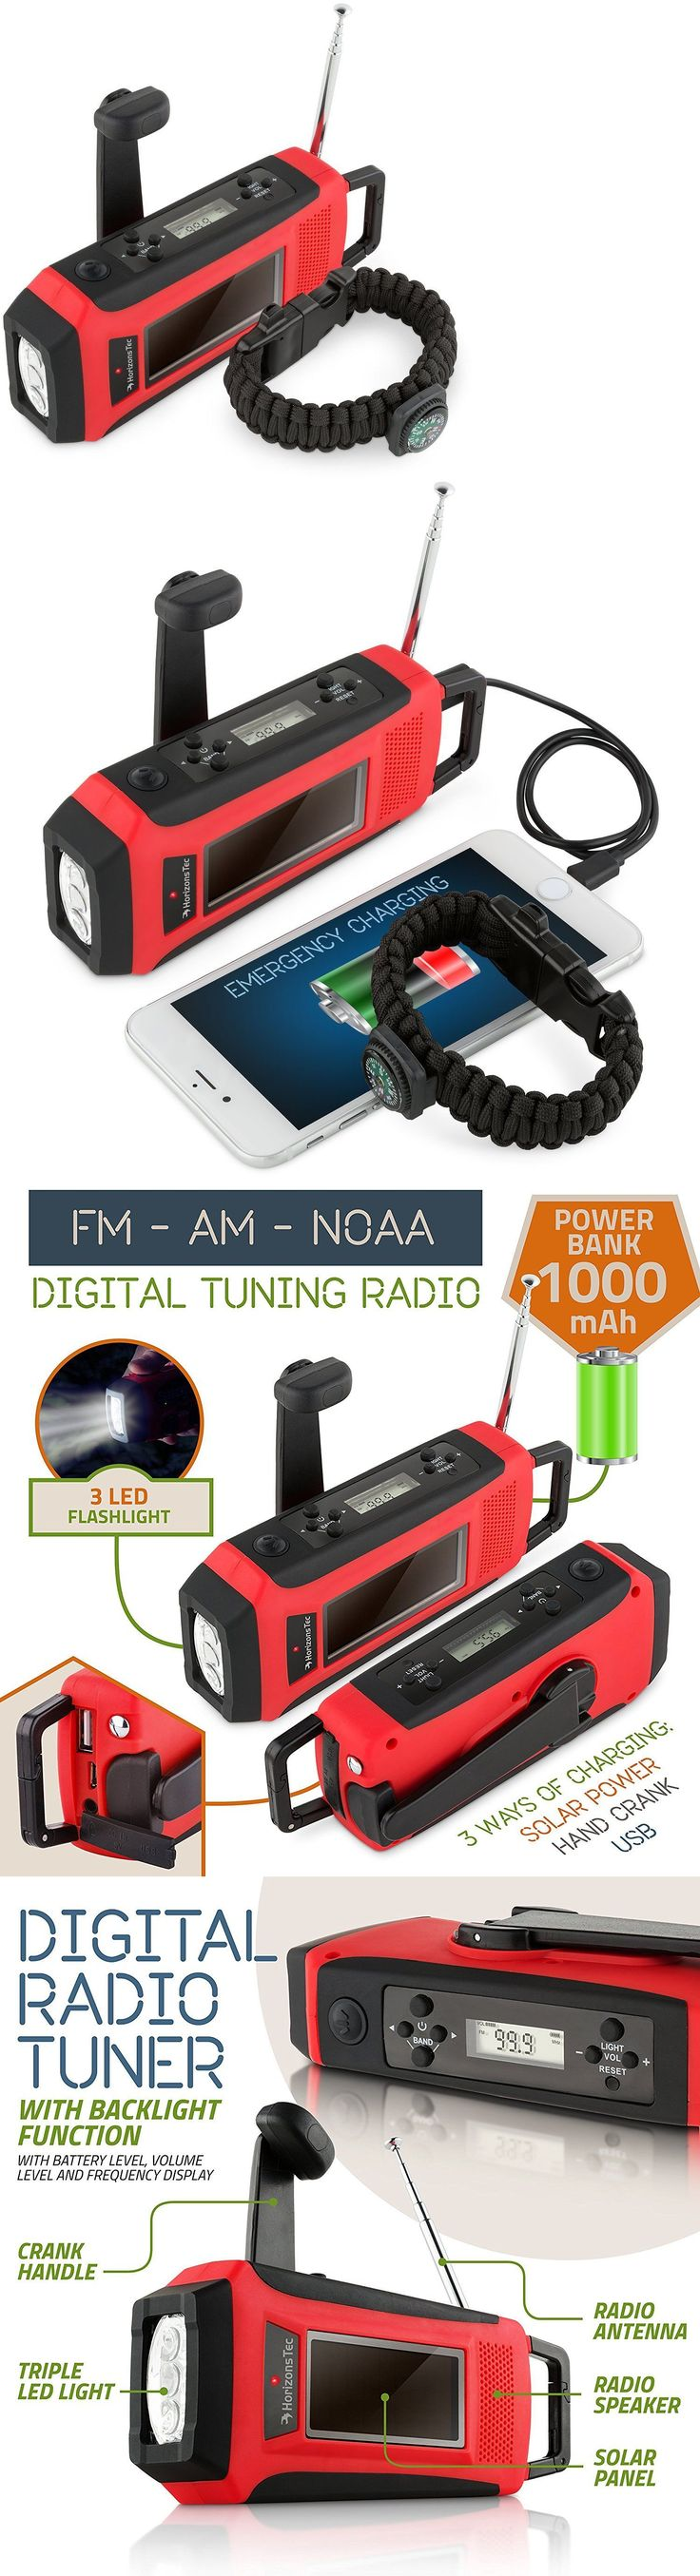 Portable AM FM Radios: Emergency Solar Hand Crank Noaa Weather Radio Led Flashlight Charger Powered Mob -> BUY IT NOW ONLY: $31.95 on eBay!